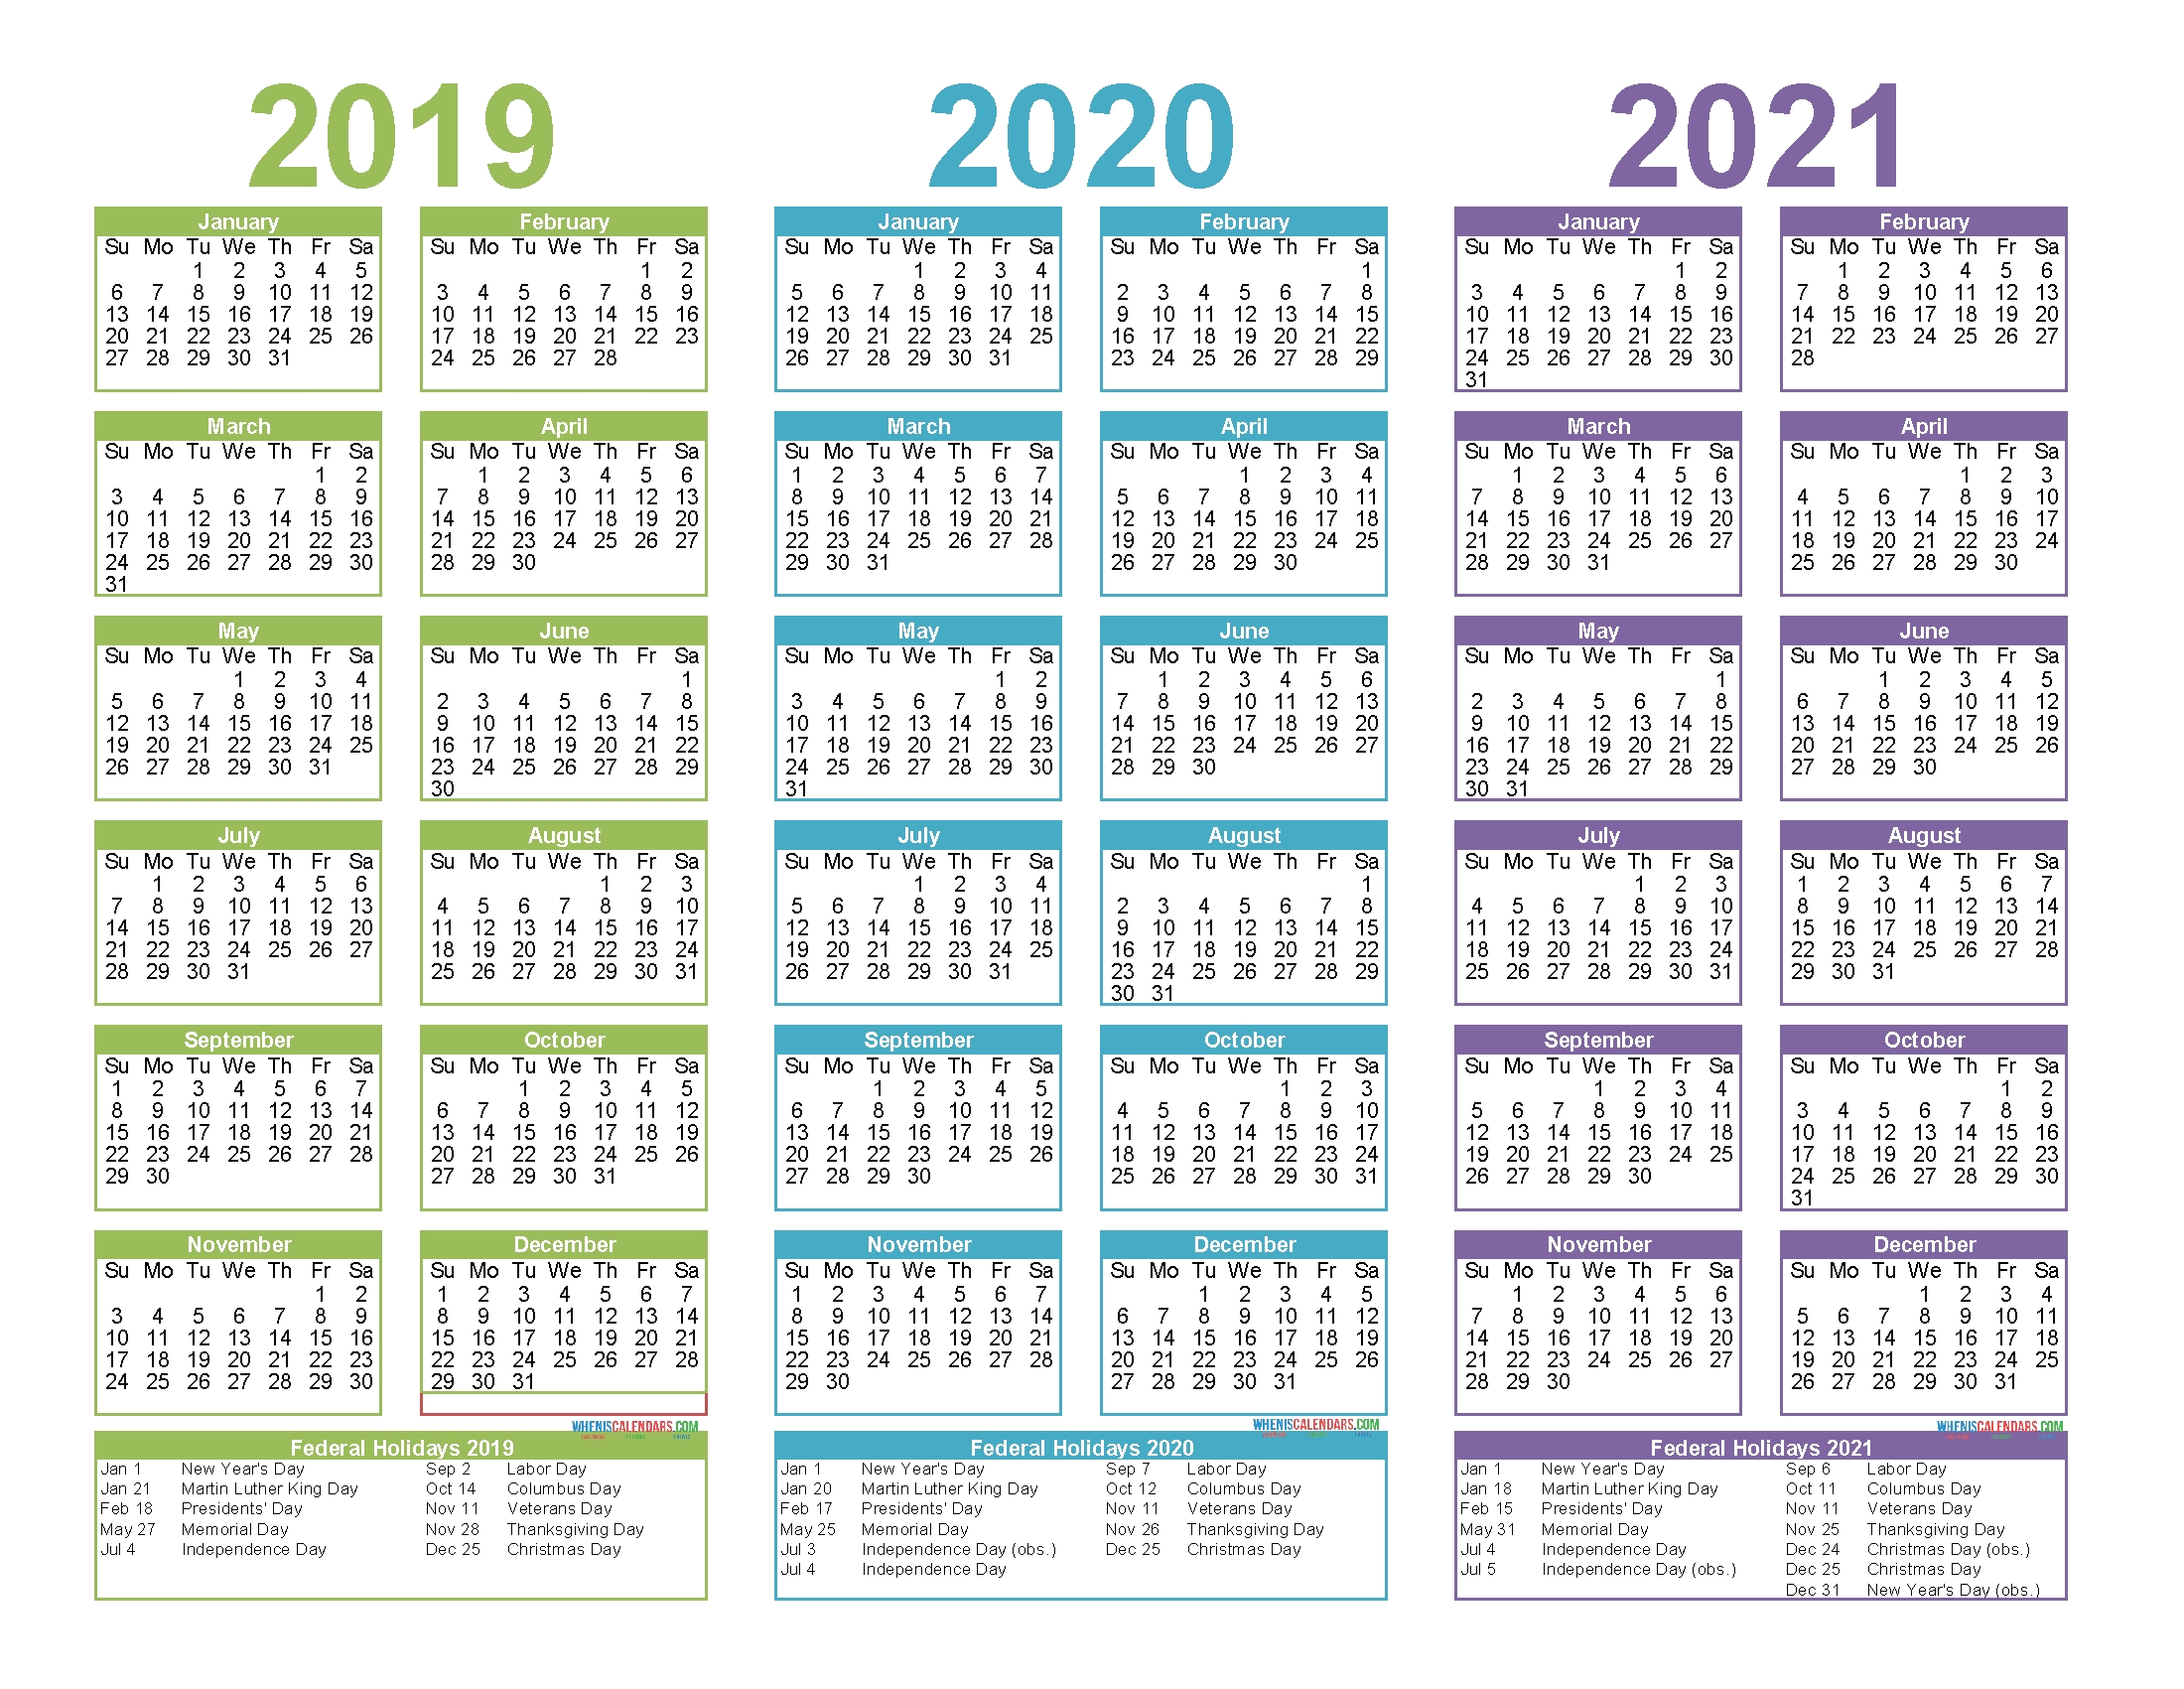 2019 To 2021 3 Year Calendar Printable Free Pdf, Word, Image within 2019 To 2021 Printable Calendar